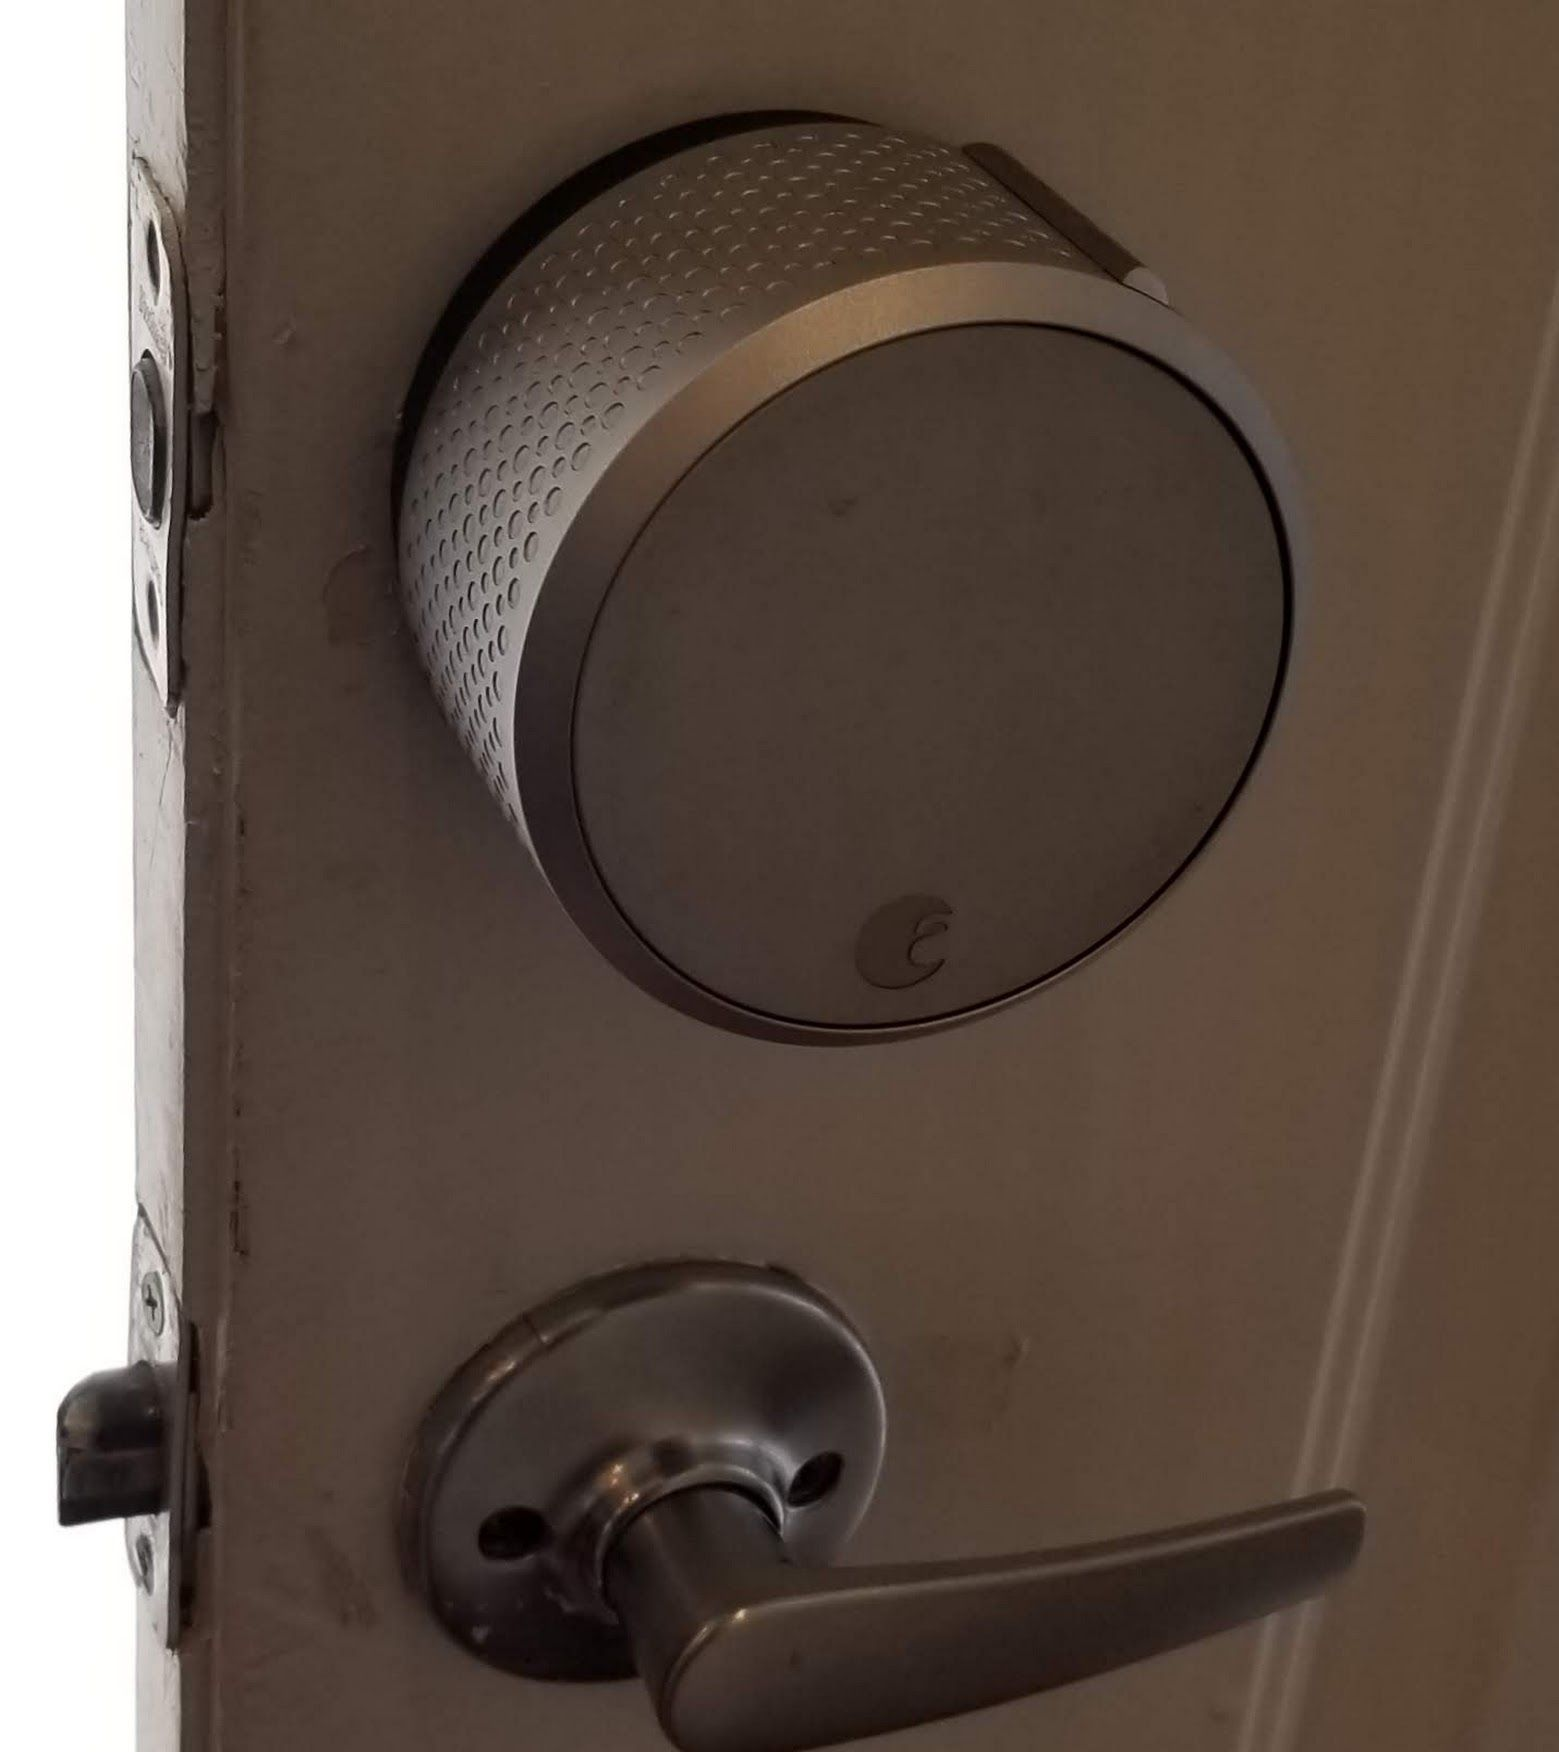 August Smart Lock Installed Today Http Dylocksmith Com When You Moving August Smart Lock Smart Lock Works With Alexa